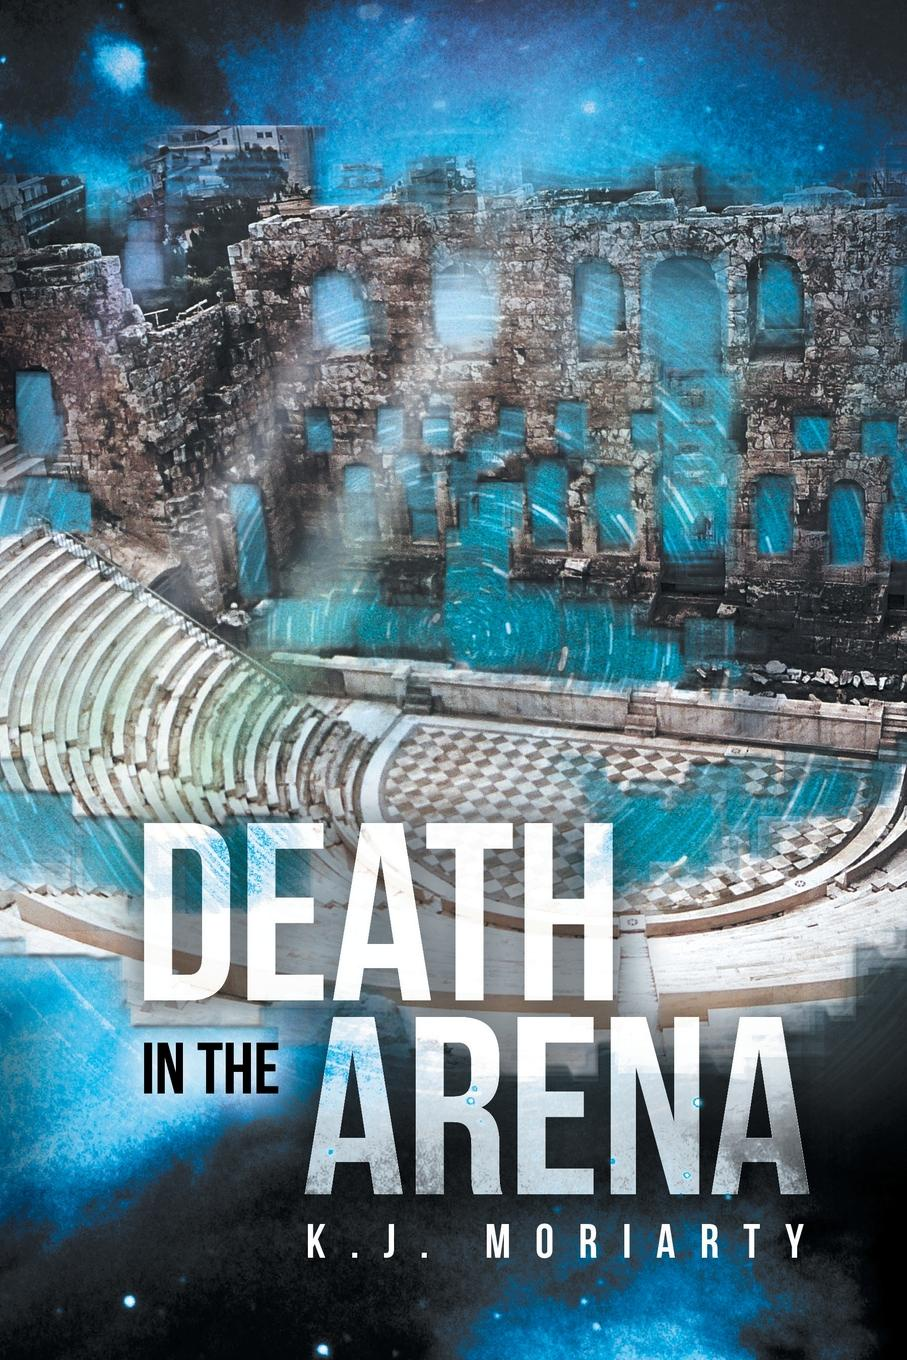 K. J. Moriarty Death in the Arena